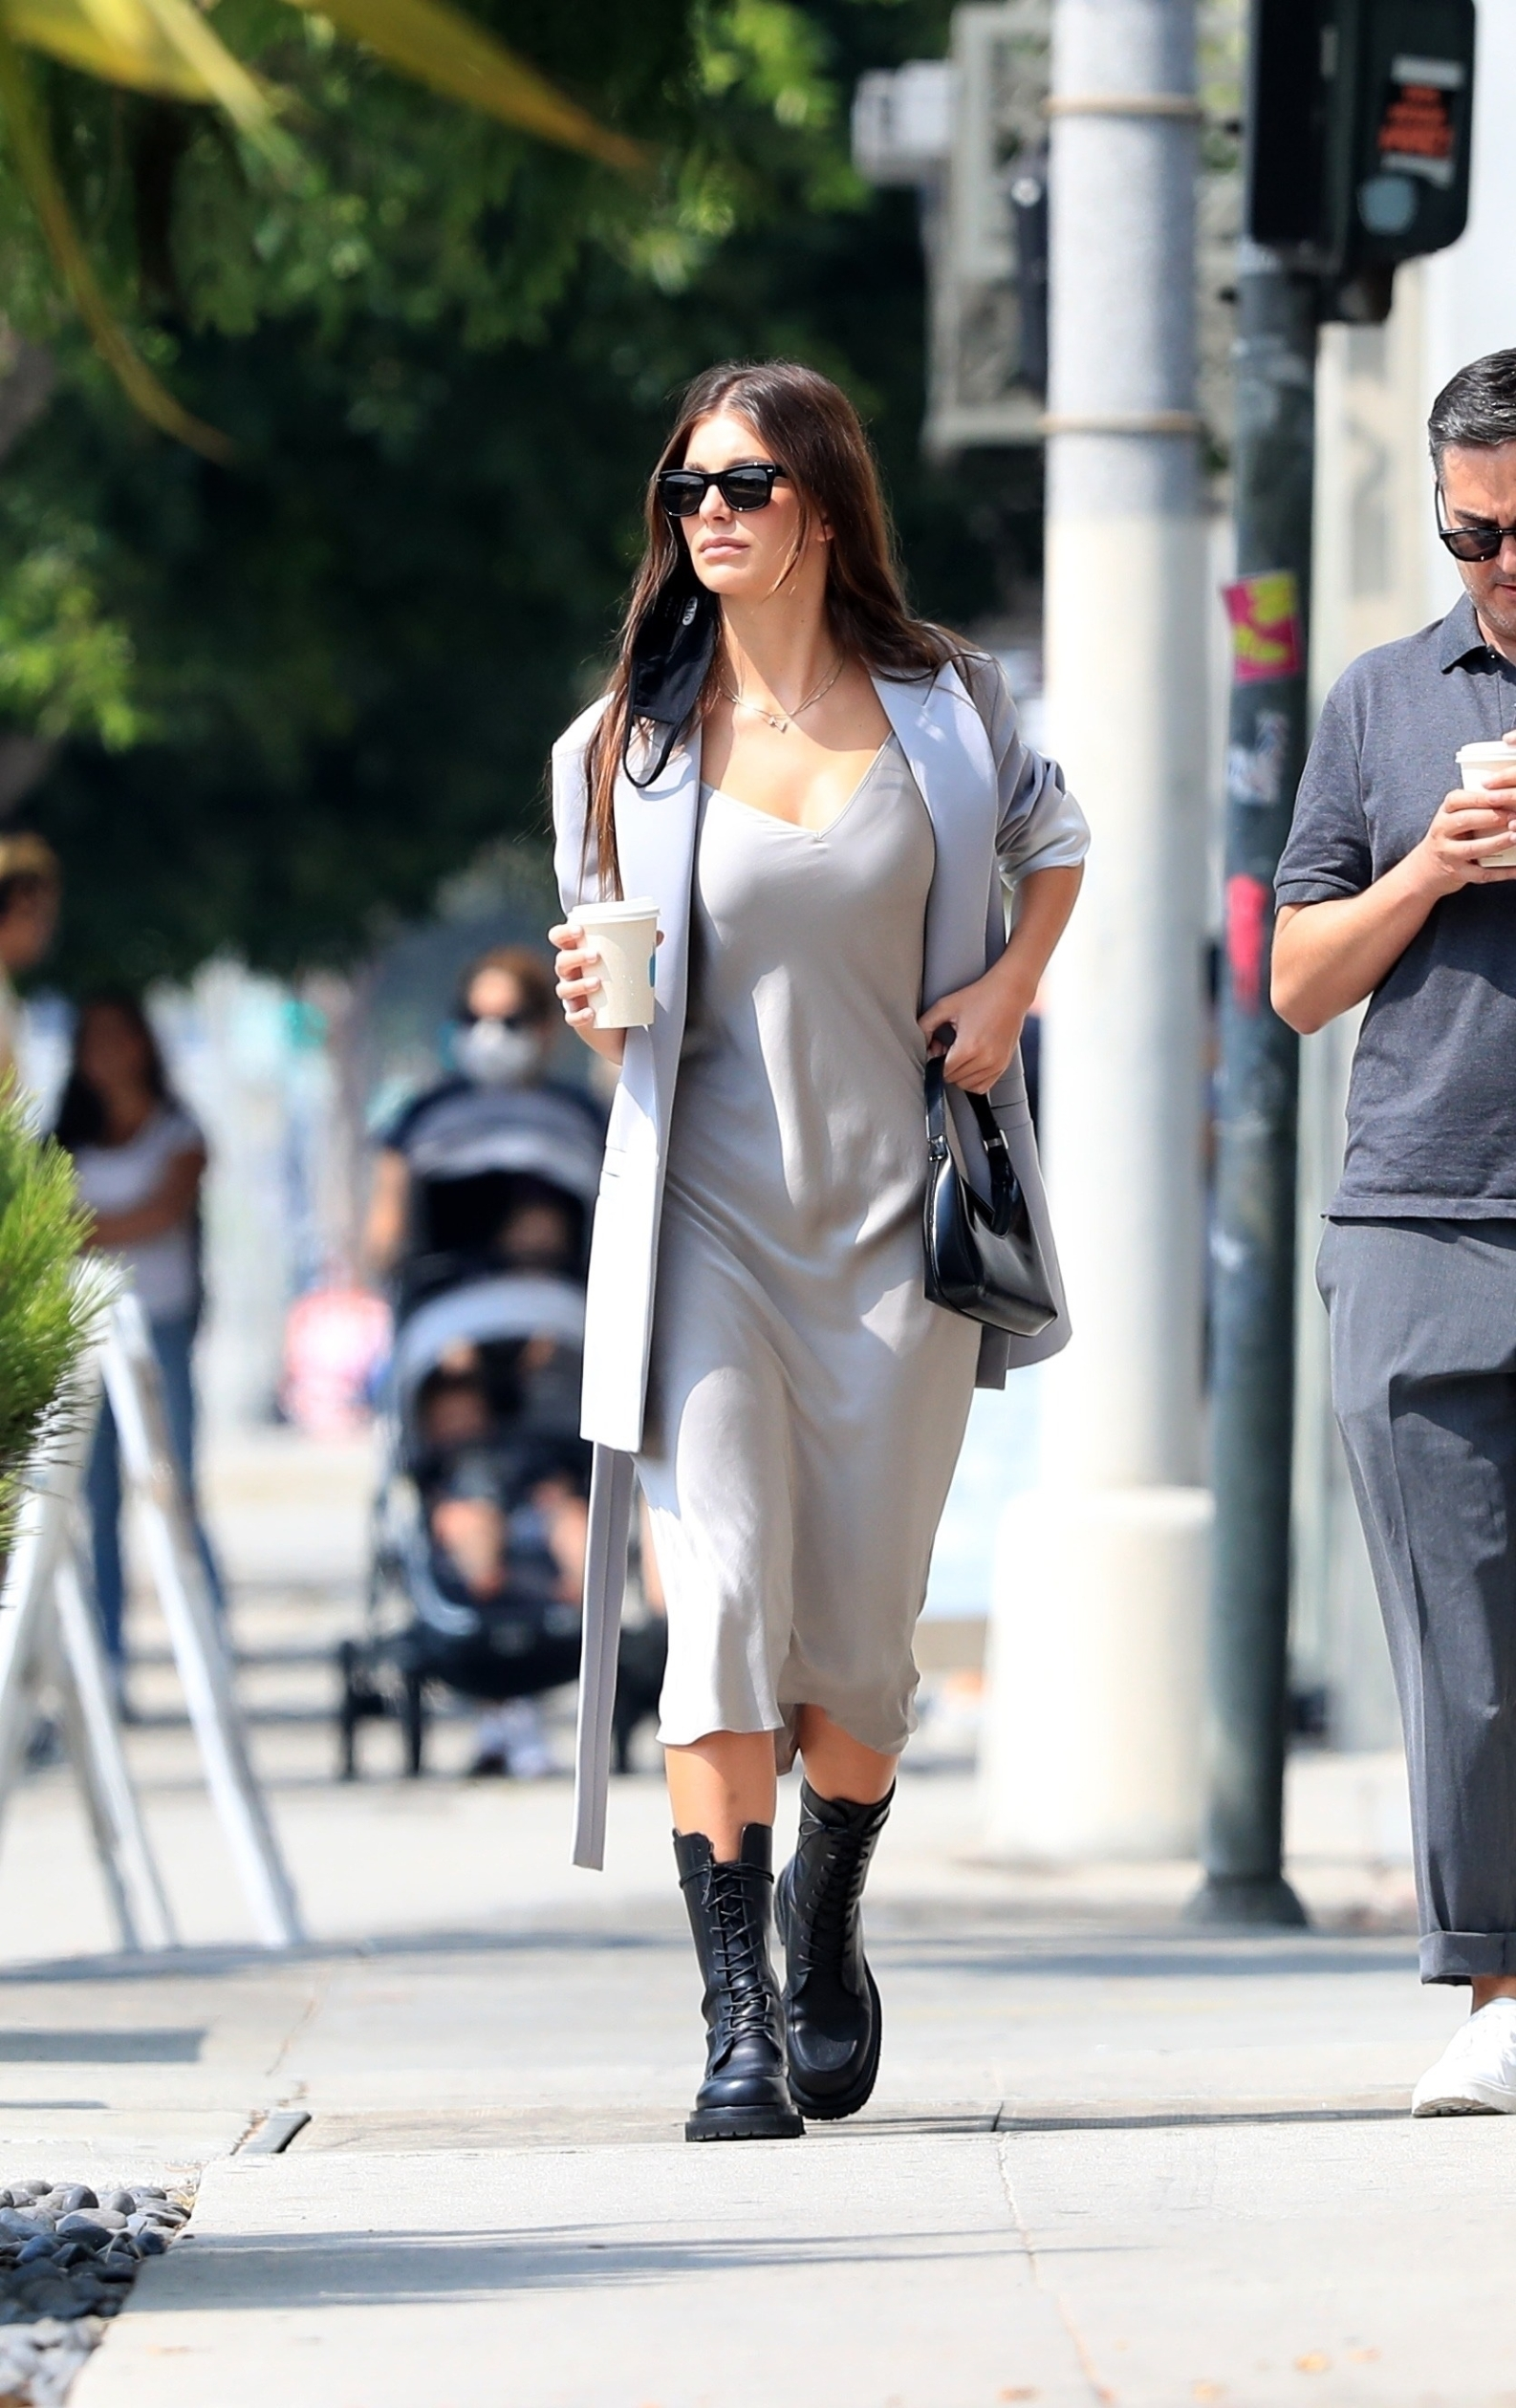 West Hollywood, CA  - *EXCLUSIVE*  - Leo DiCaprio's model girlfriend Camila Morrone was spotted stepping out with her stylist Micah Marcus as they went to grab coffee at Blue Bottle Coffee Company. The stunning model sported a perfectly coordinated sexy + rocker chic look for the outing. Camila paired a Magda Butrym dress and Louis Vuitton necklace with a small black handlbag and black combat boots.  BACKGRID USA 16 SEPTEMBER 2020,Image: 558347295, License: Rights-managed, Restrictions: , Model Release: no, Credit line: GAMR / BACKGRID / Backgrid USA / Profimedia